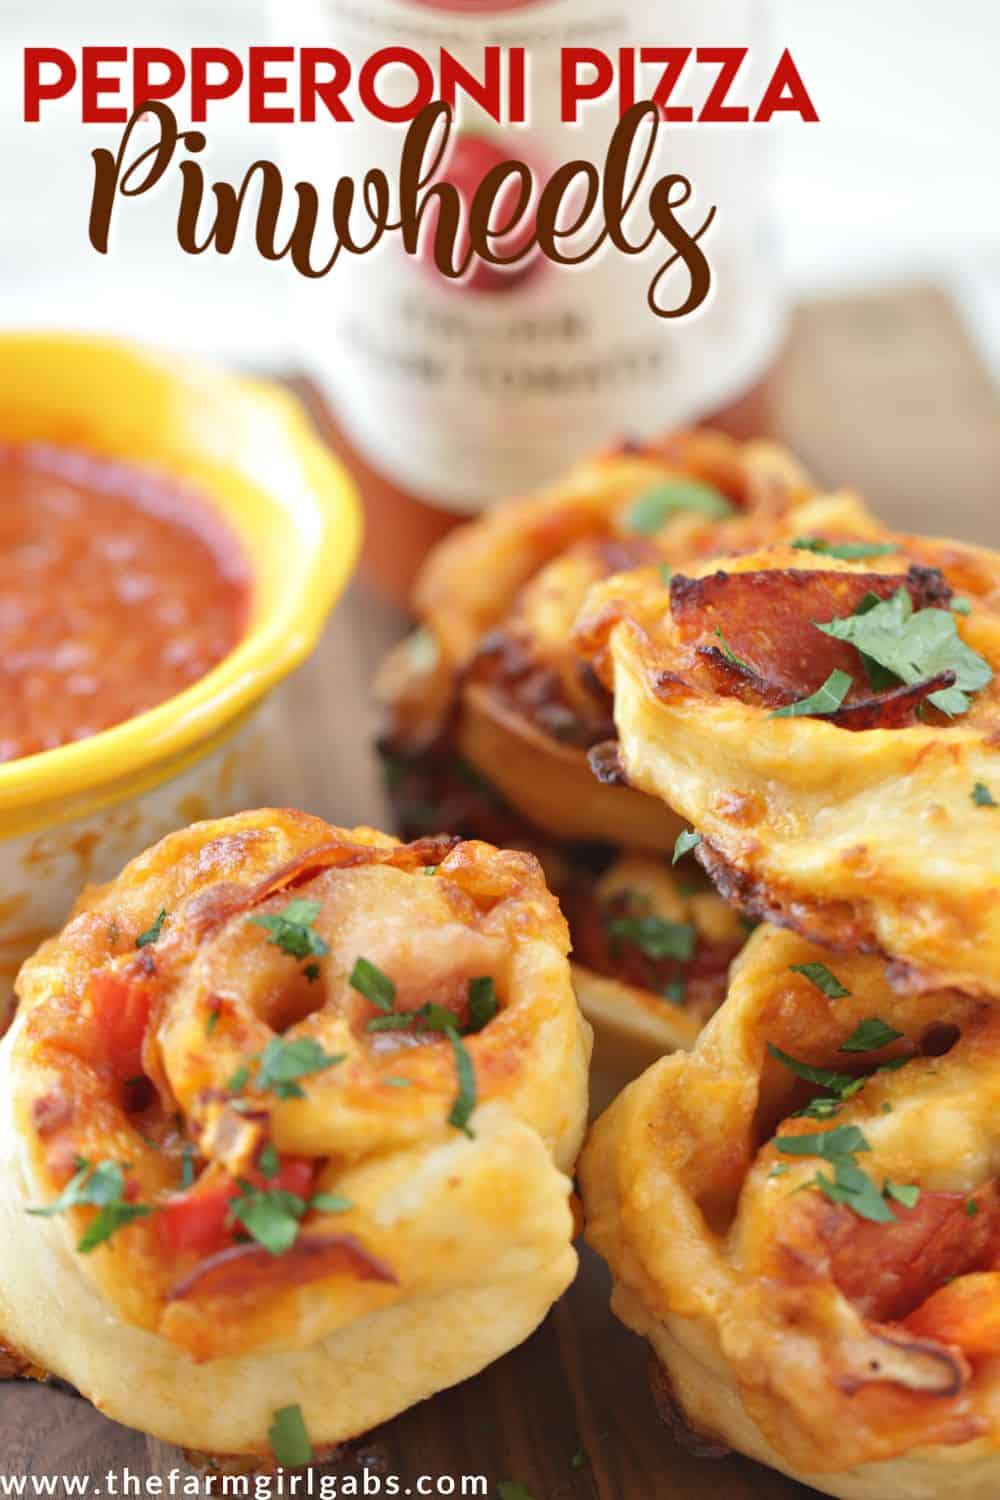 When you want to change up your normal pizza routine, try this easy Pepperoni Pizza Pinwheels recipe instead. They are a perfect snack or meal option. #Ad #LivenUpYourMeal #Mezzetta #MezzettaSauce #KetoLife #PizzaRecipe #Pinwheels